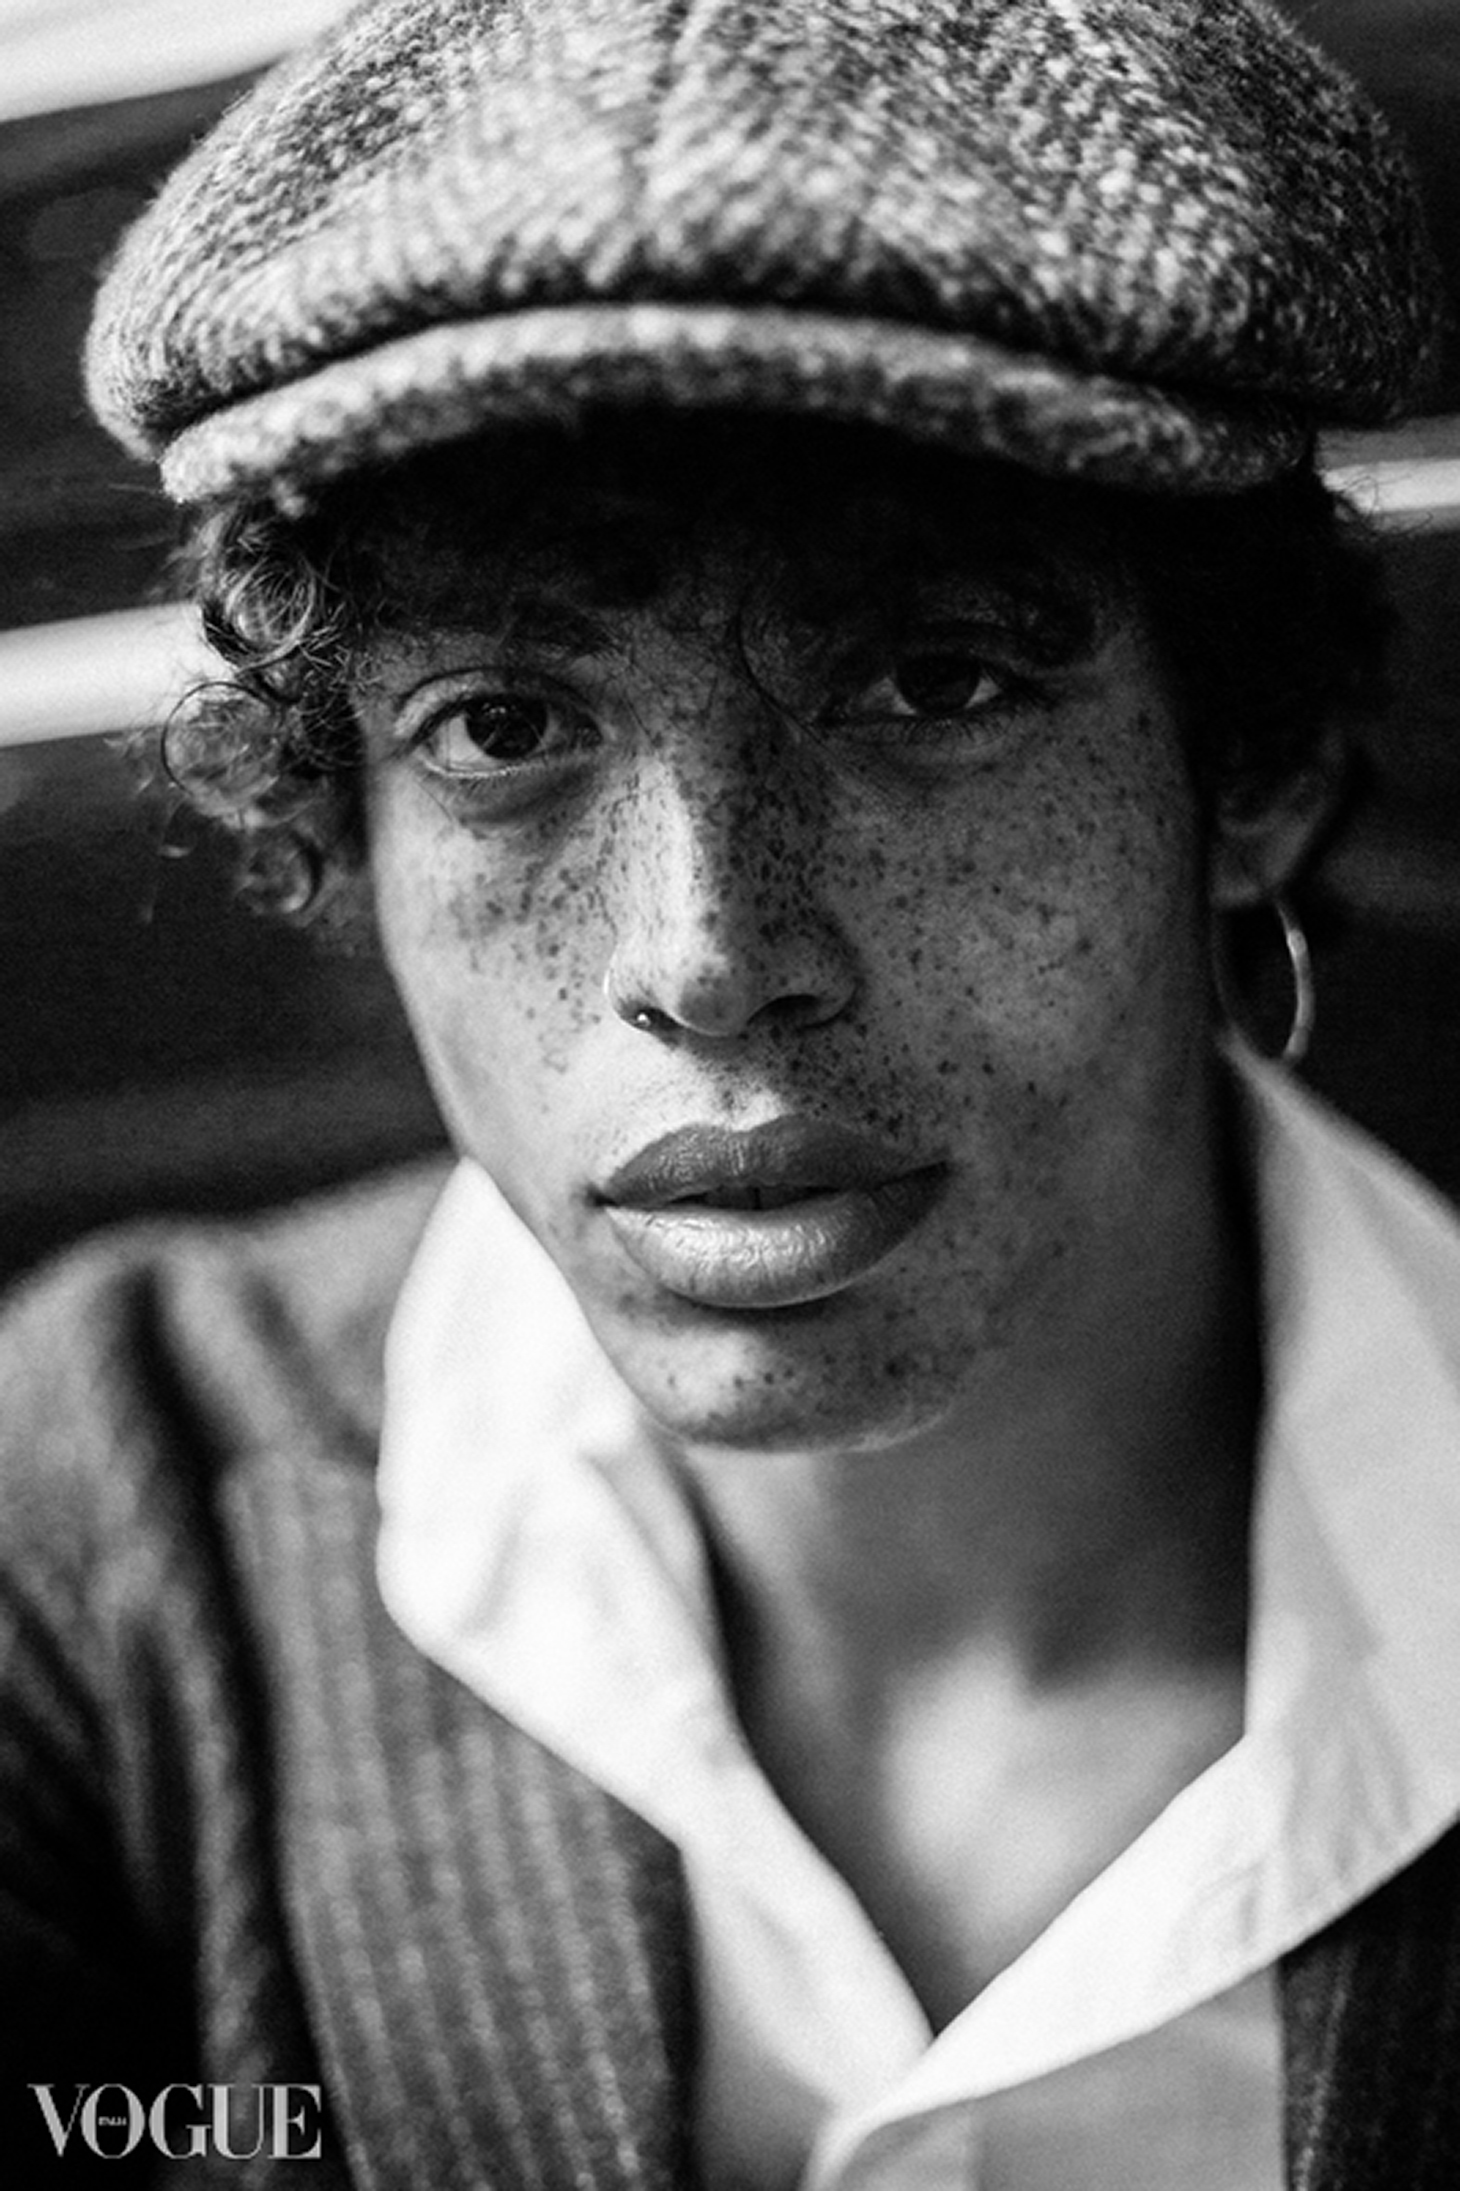 christiano portrait black and white curly hair freckles